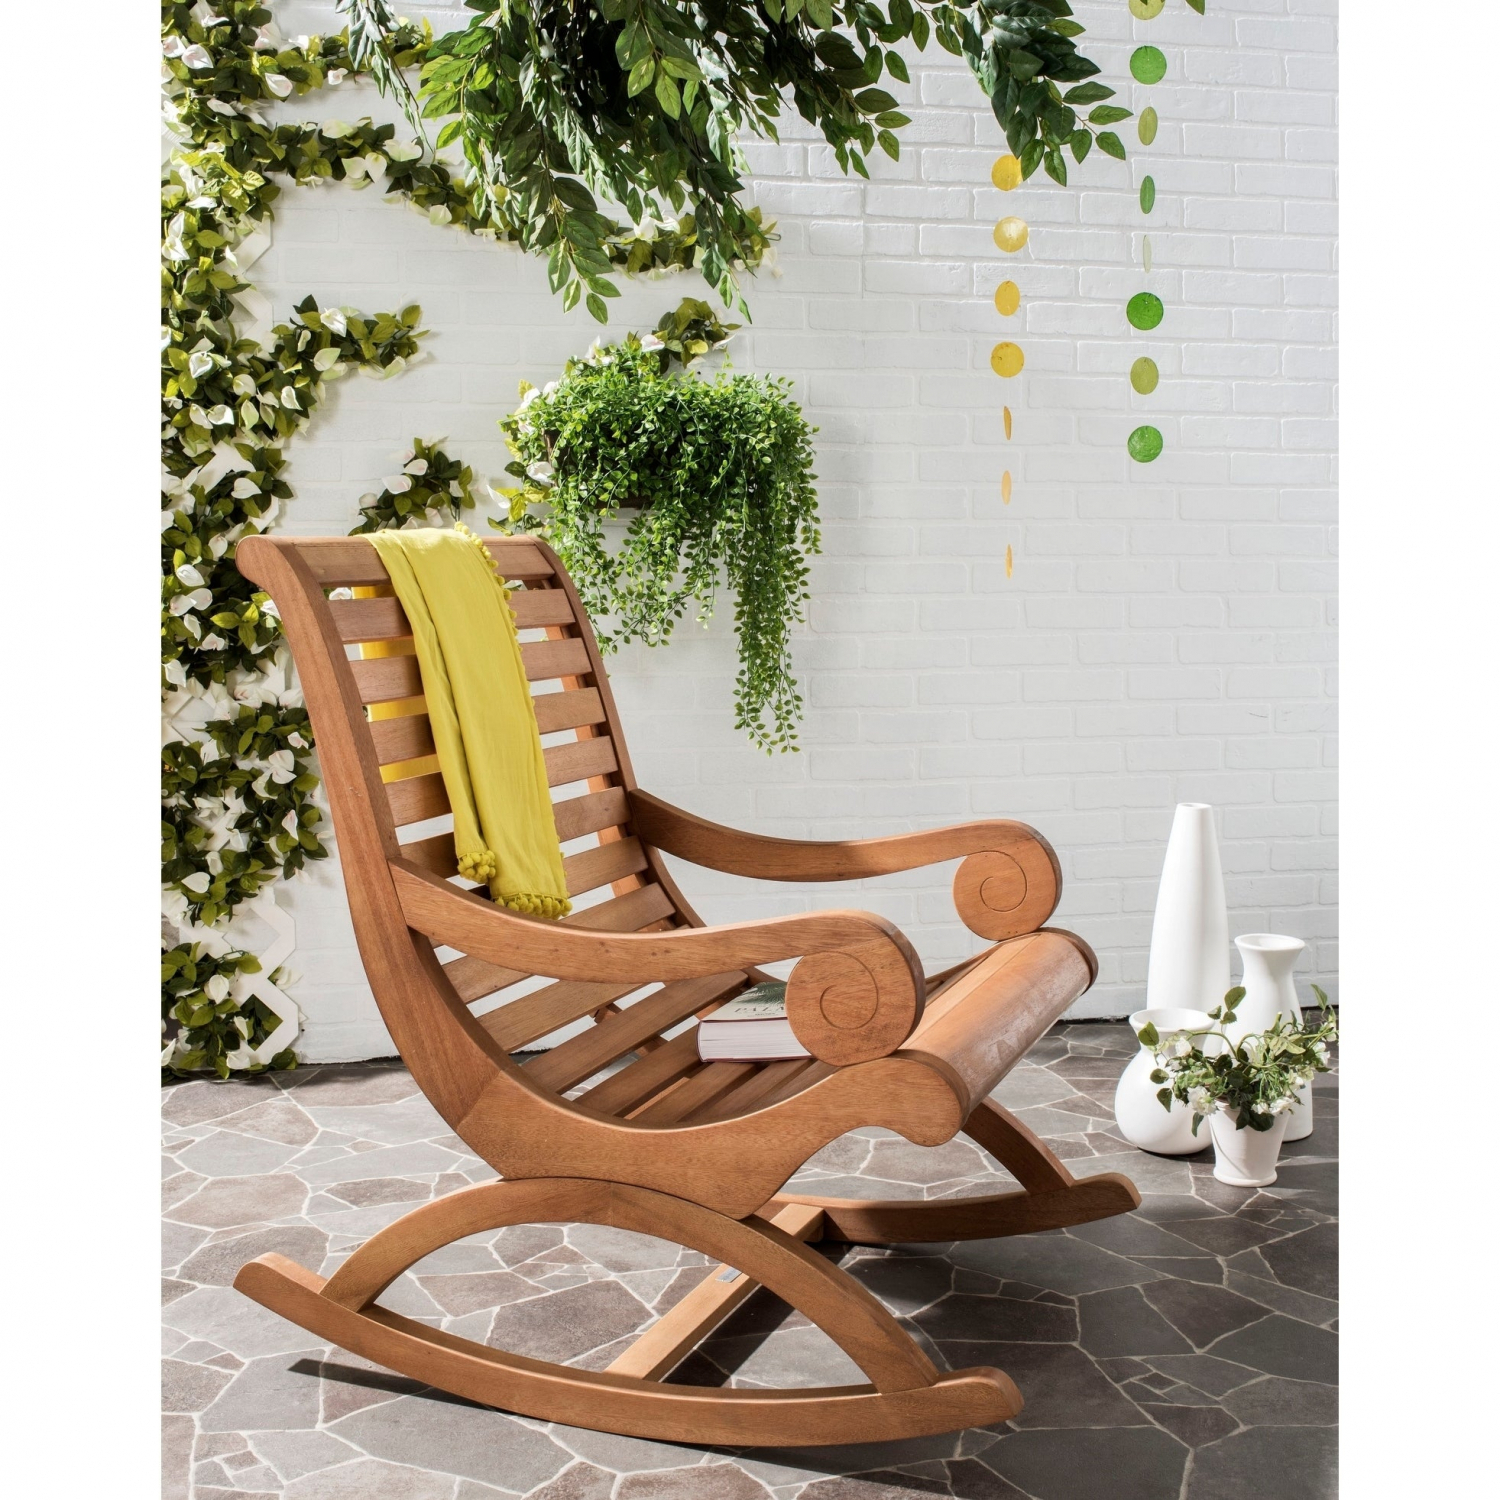 Eucalyptus Wood Rocking Chair Plantation Porch Patio Within Rocking Sofa Chairs (View 7 of 15)